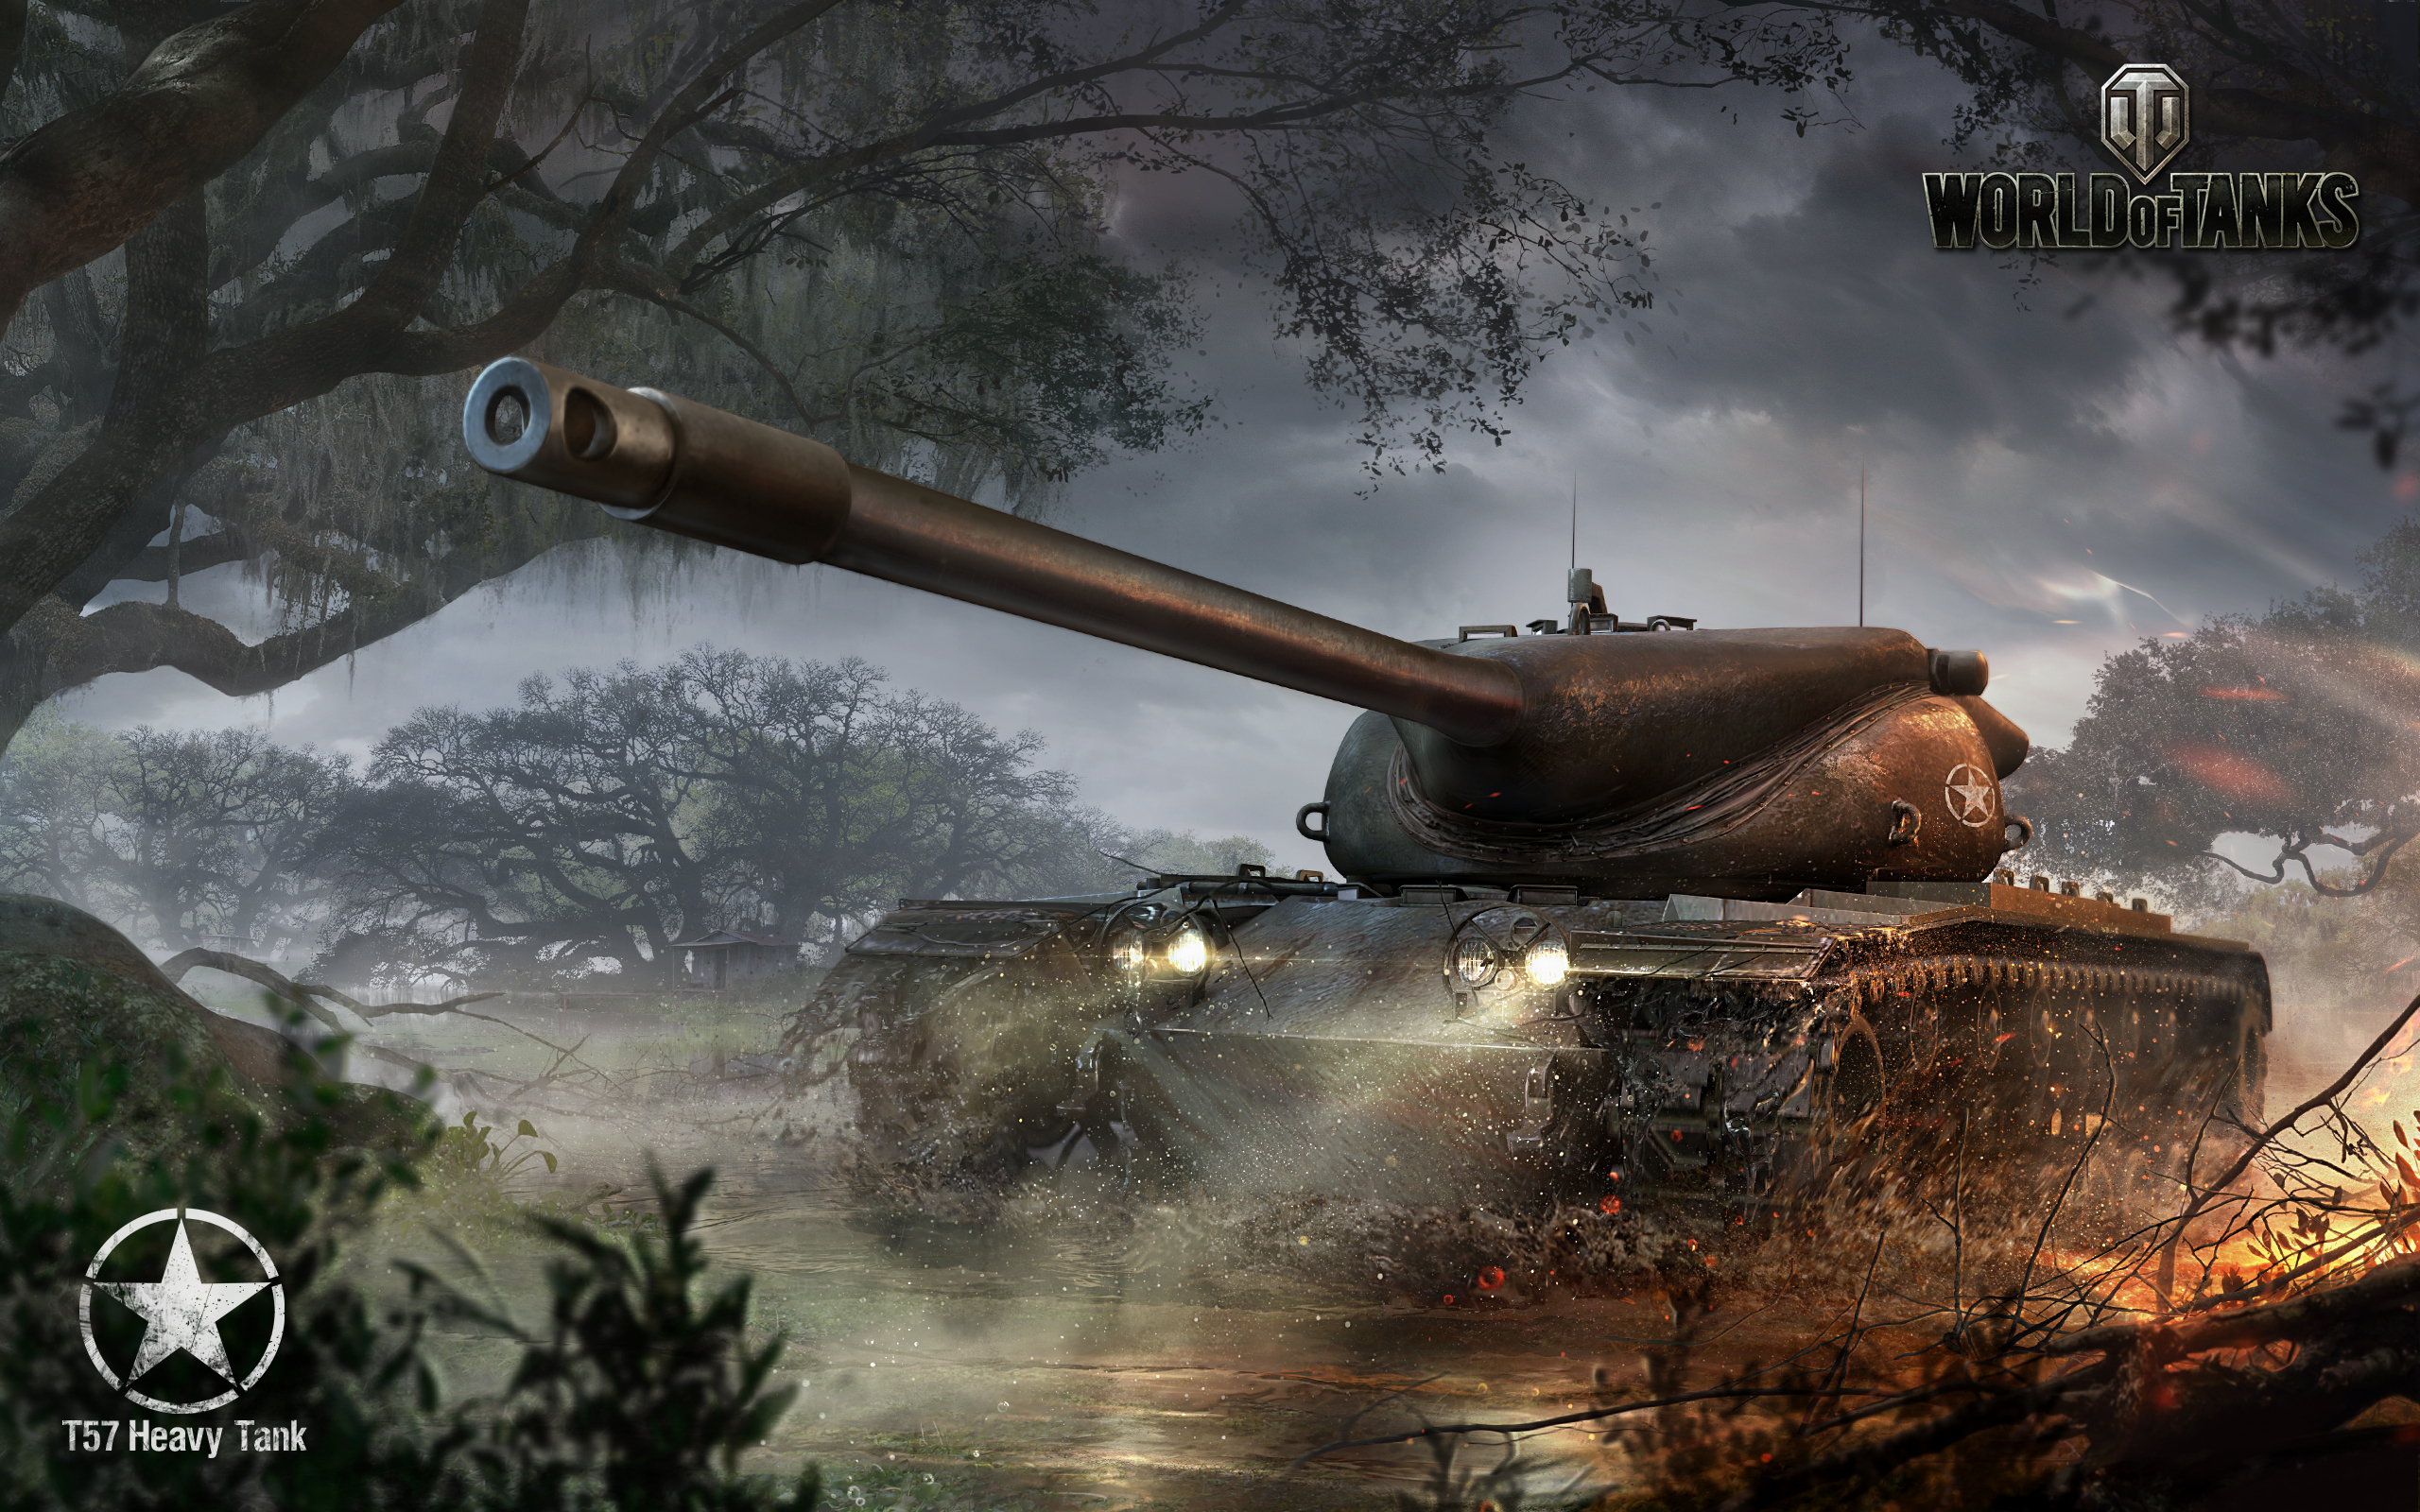 T57 Heavy Tank World of Tanks 400.61 Kb